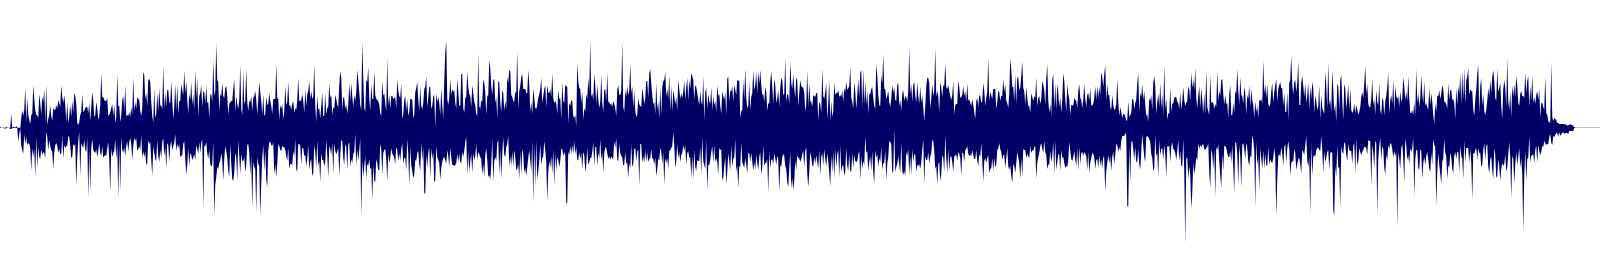 waveform of track #136799